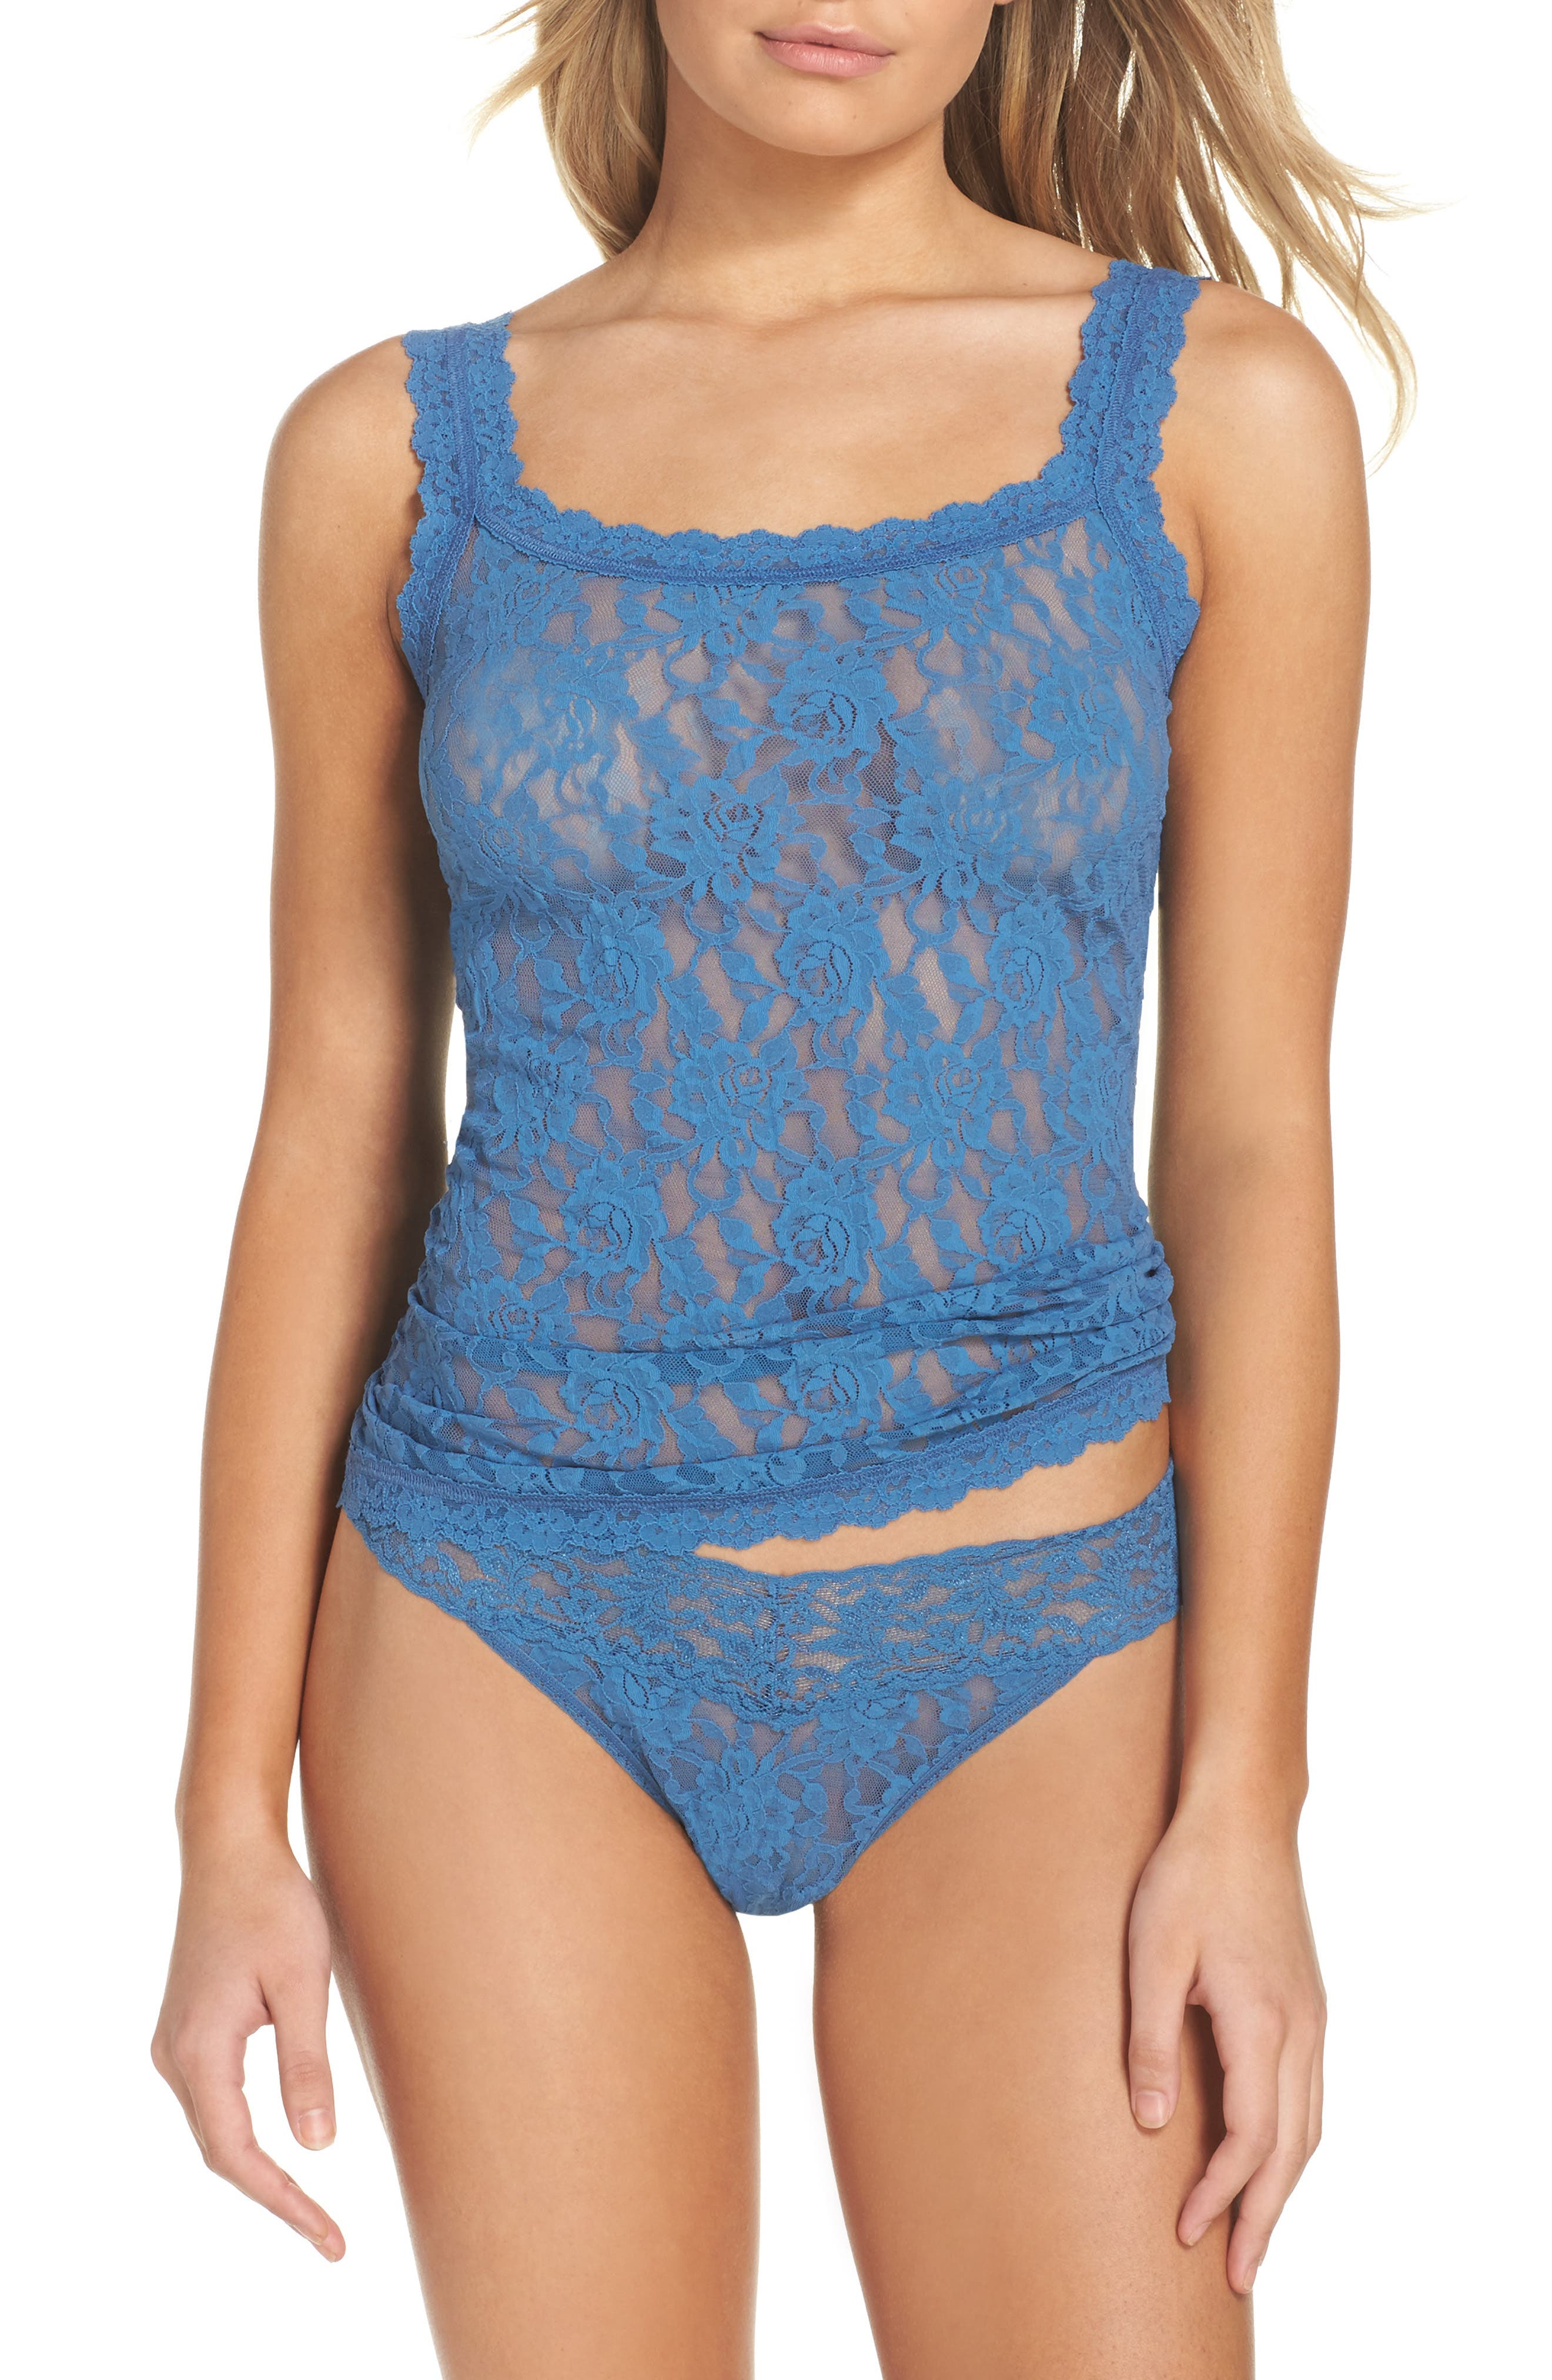 Hanky Panky 'Signature Lace' Camisole & Thong